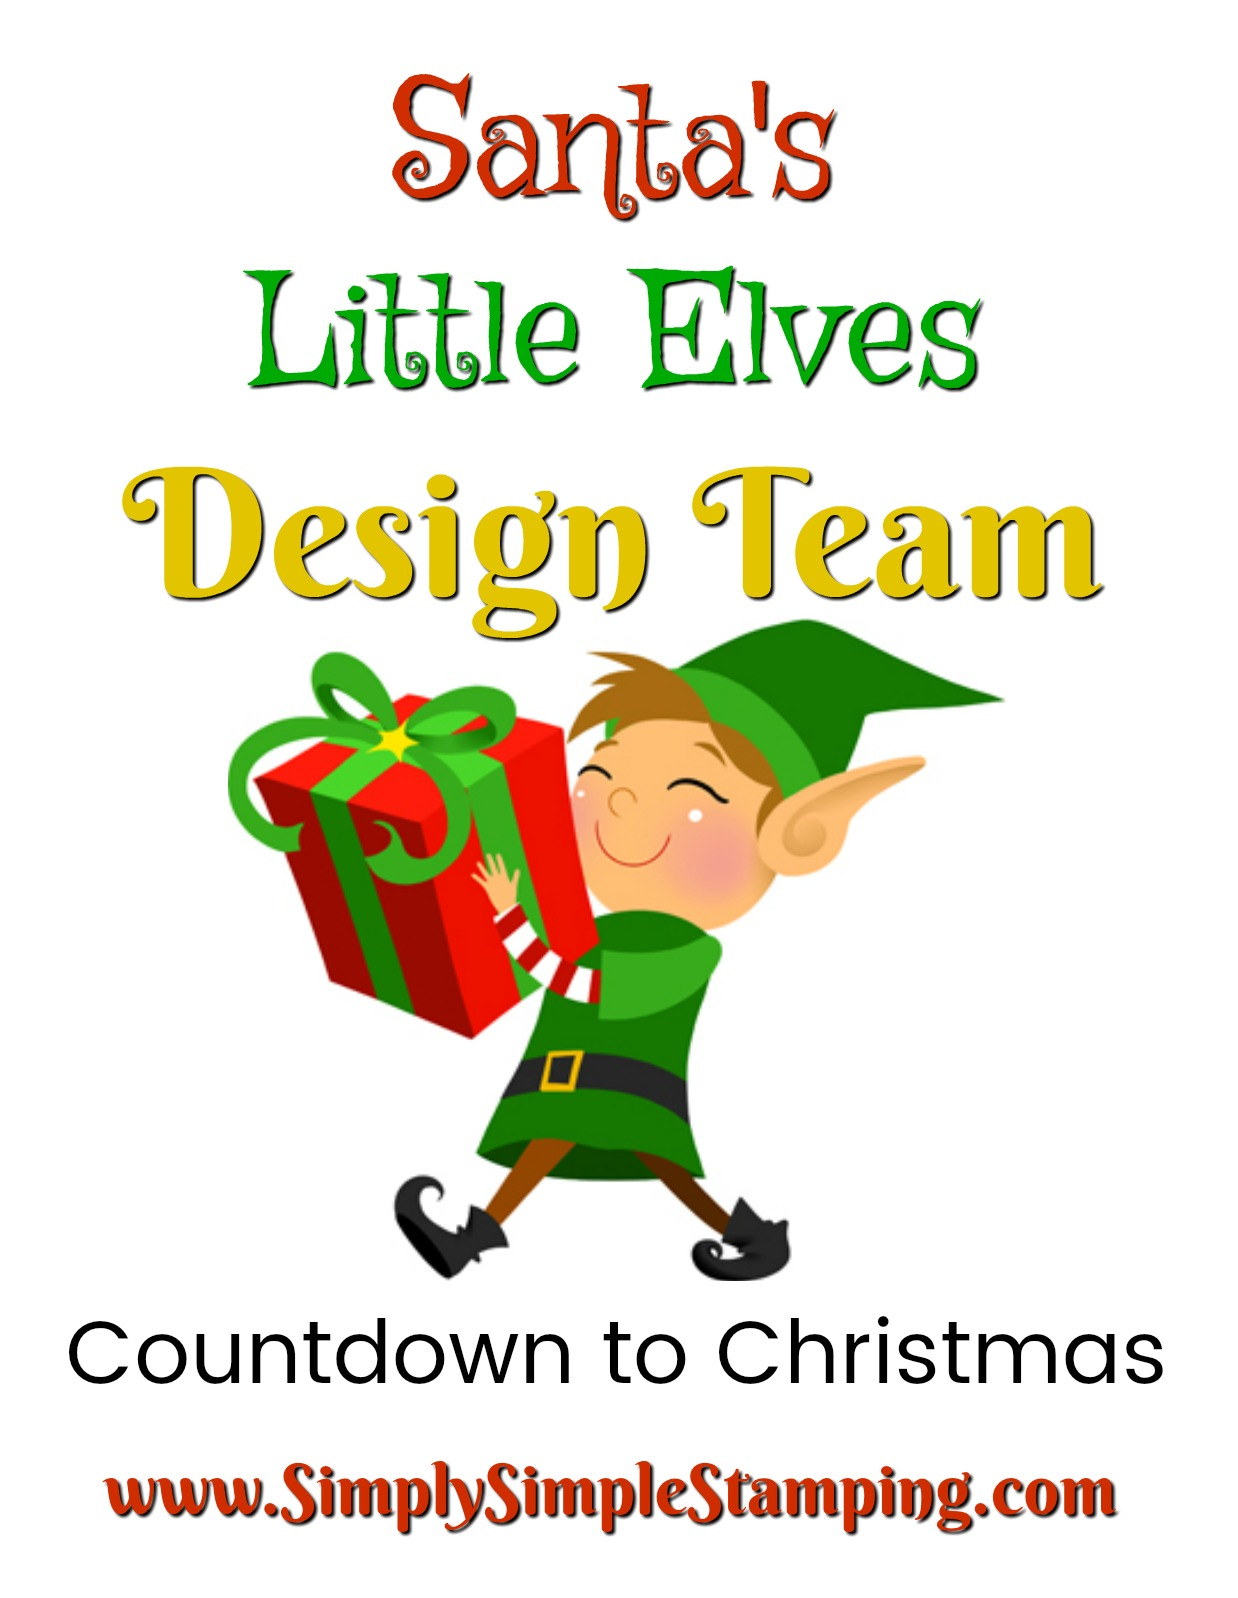 See what SANTA'S LITTLE ELVES Design Team has created for you in their COUNTDOWN TO CHRISTMAS collection of tutorials. See a new tutorial every Friday at www.SimplySimpleStamping.com